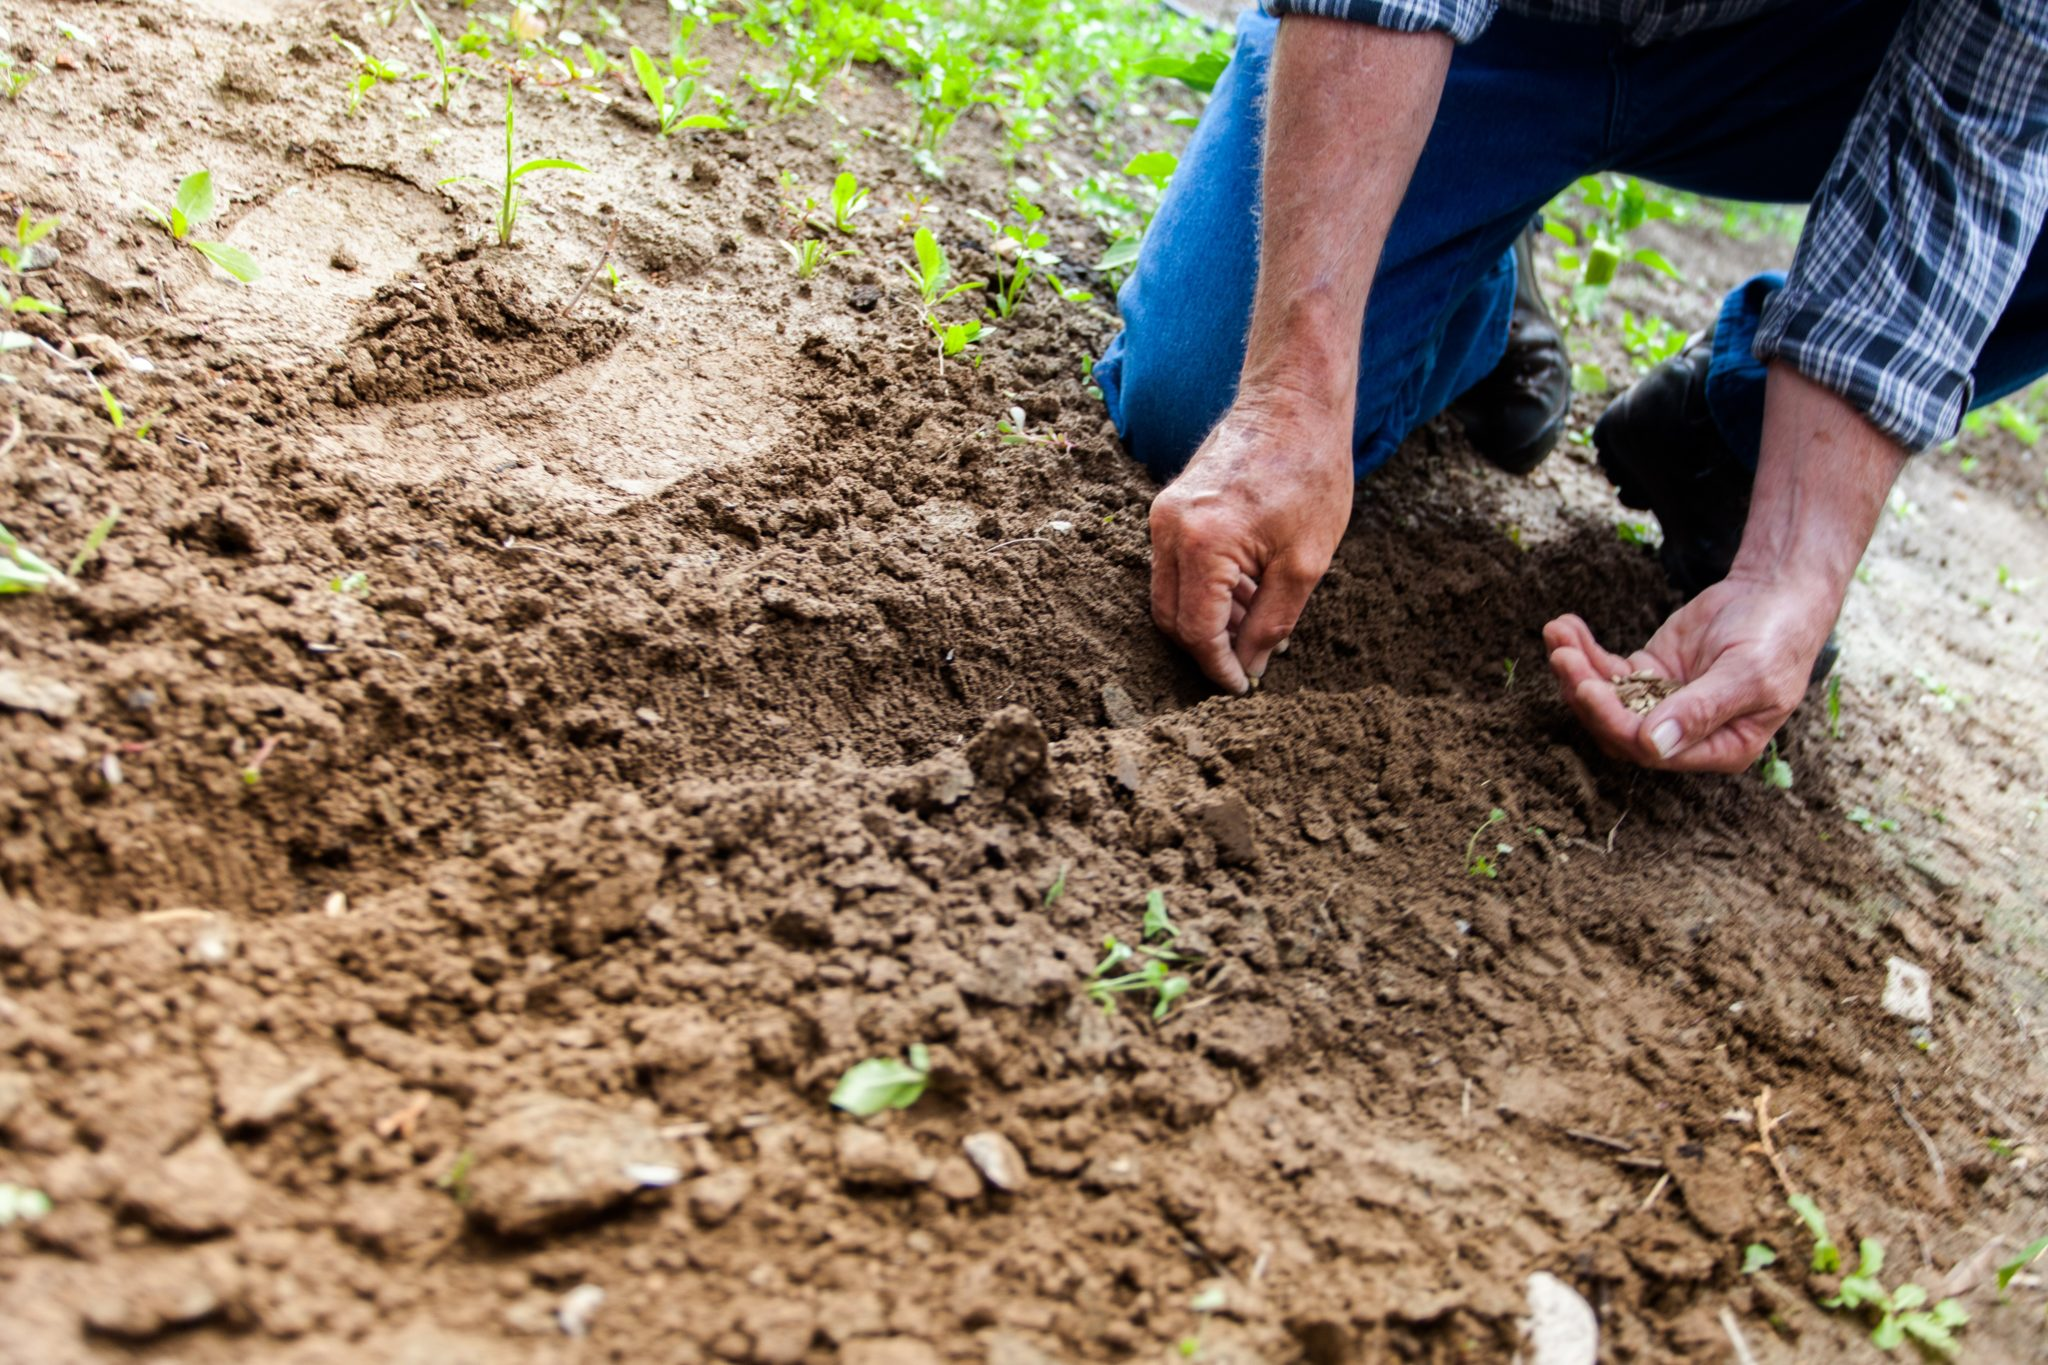 Check out our guide on how to fertilize your lawn.